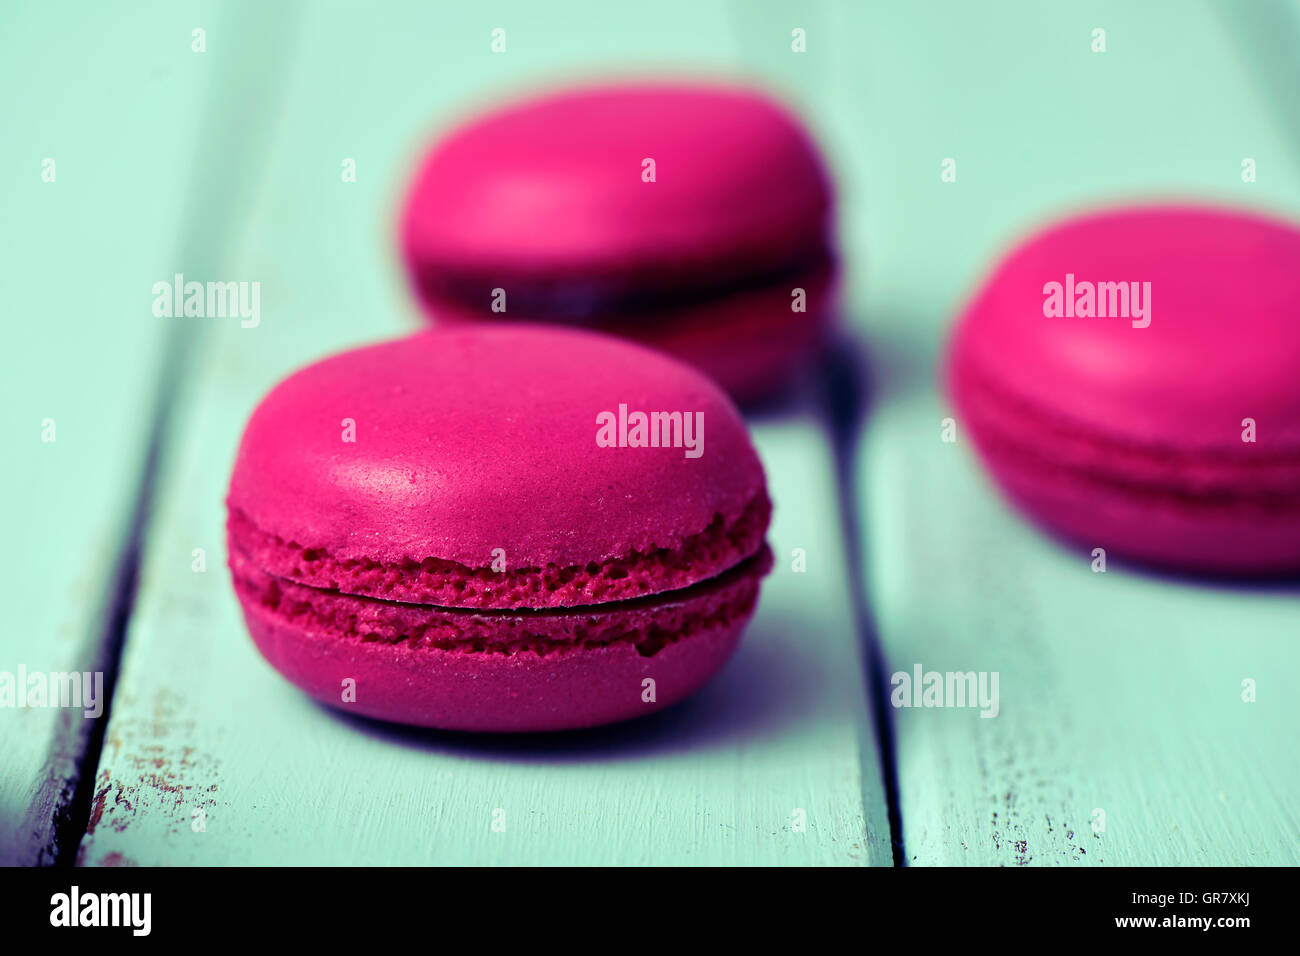 closeup of some appetizing purple macarons on a pale blue rustic wooden surface - Stock Image